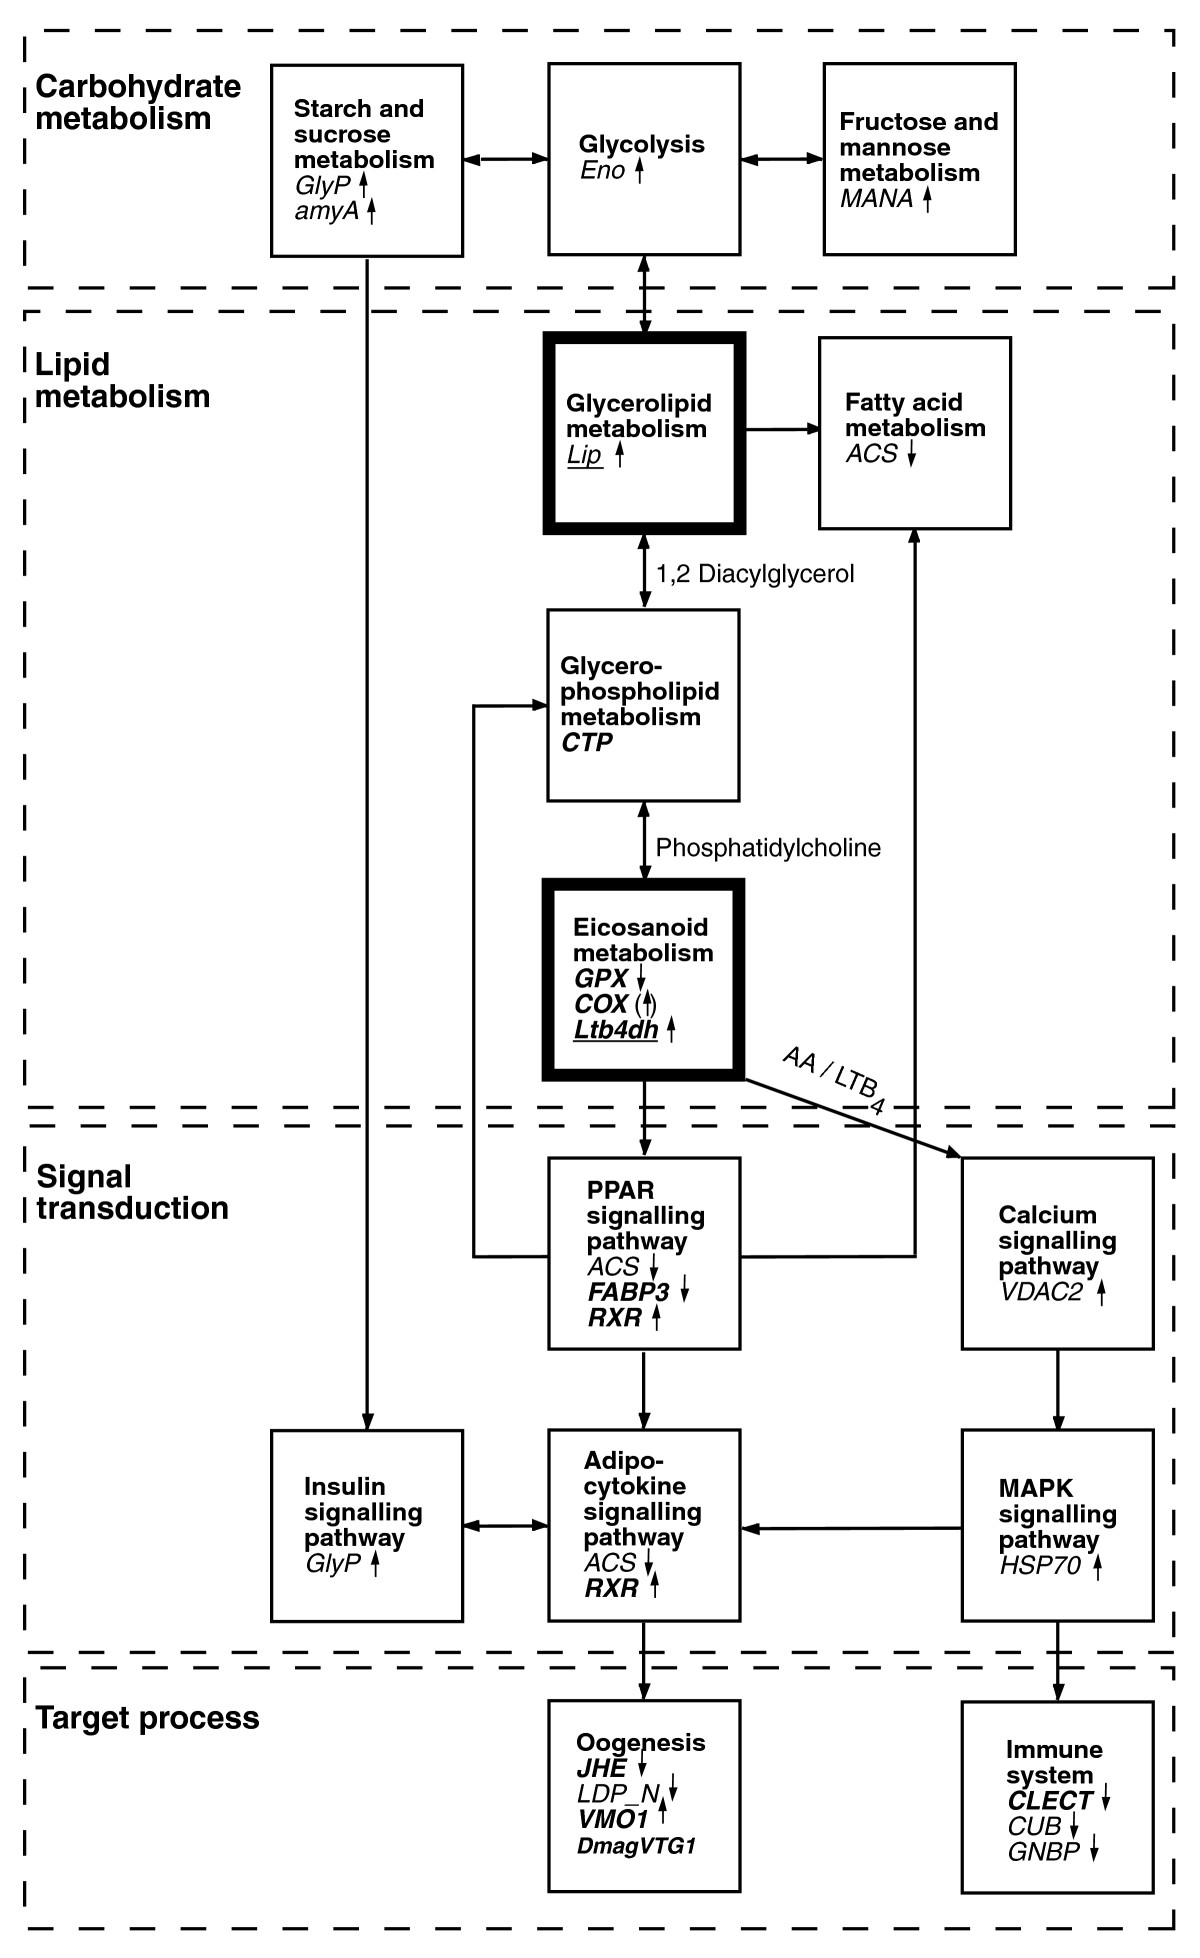 https://static-content.springer.com/image/art%3A10.1186%2Fgb-2008-9-2-r40/MediaObjects/13059_2007_Article_1902_Fig3_HTML.jpg